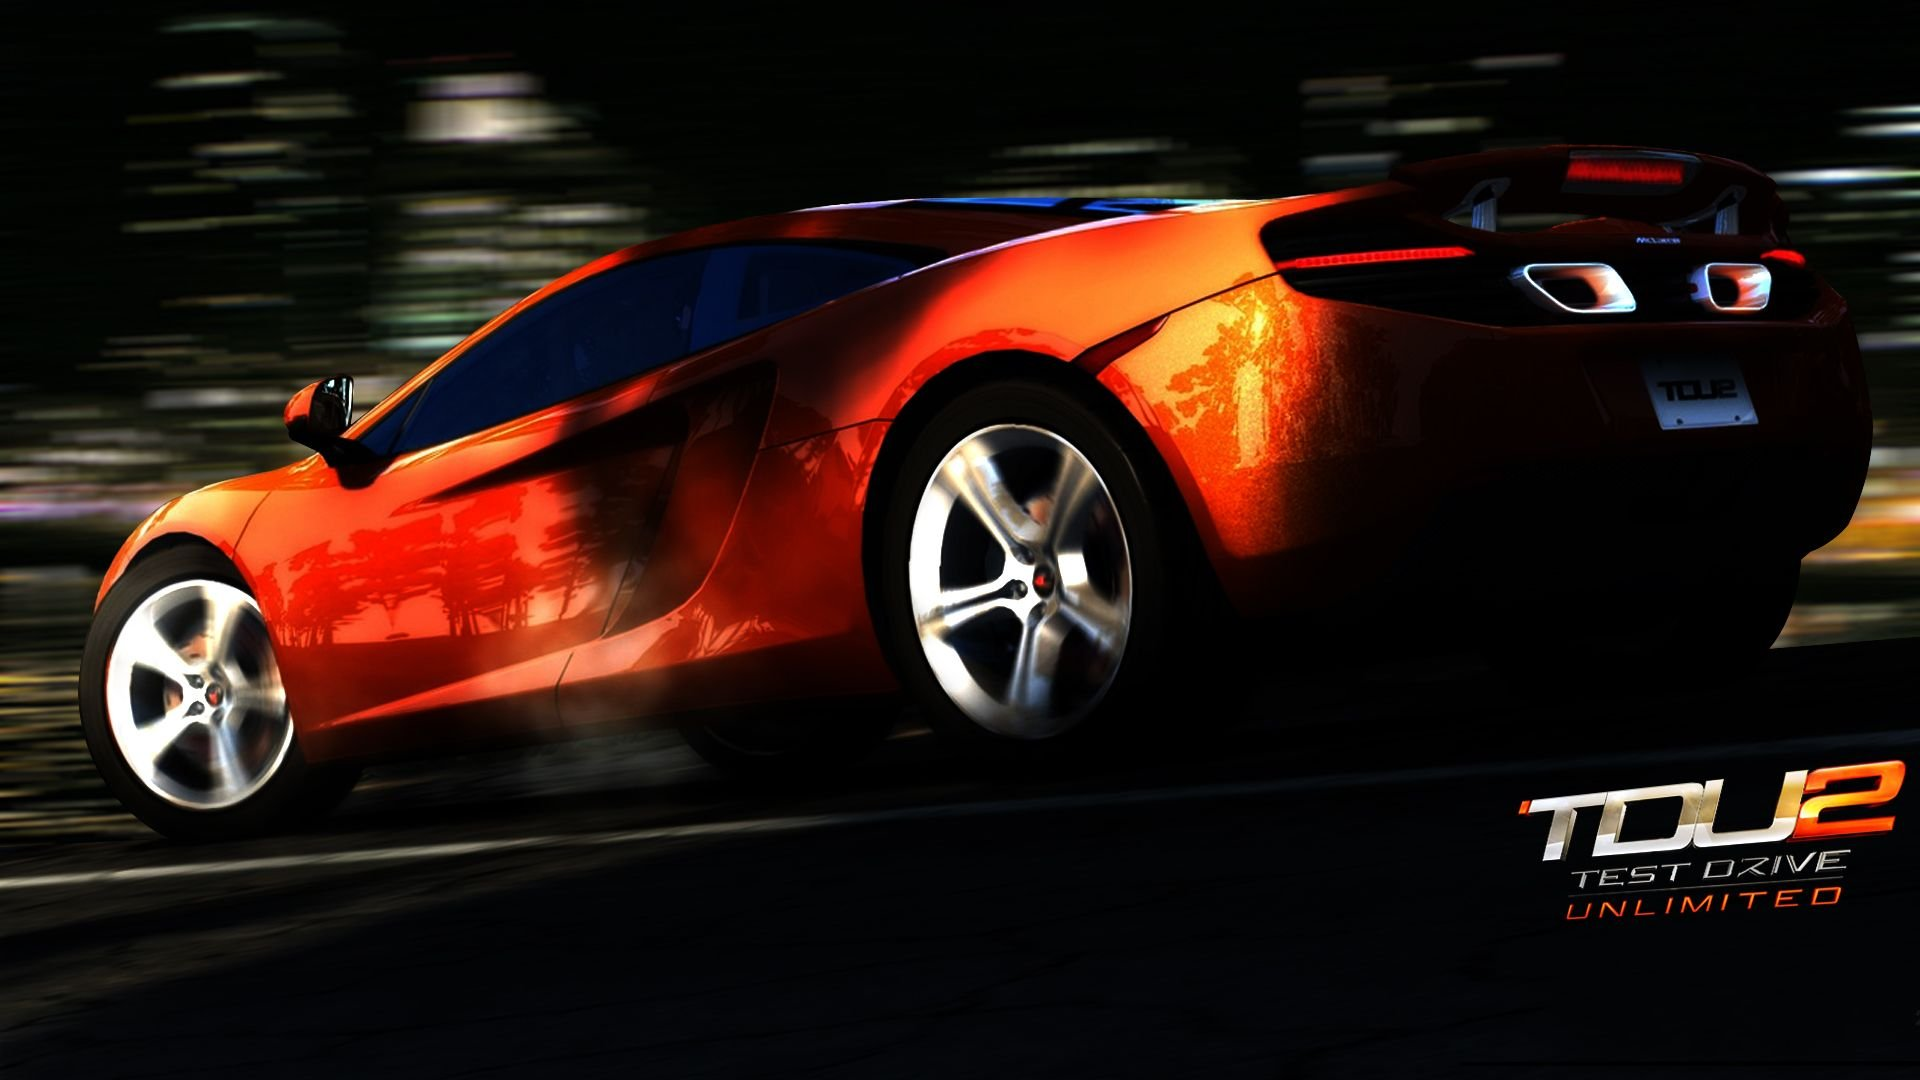 unlimited wallpaper drive games background web 1920x1080